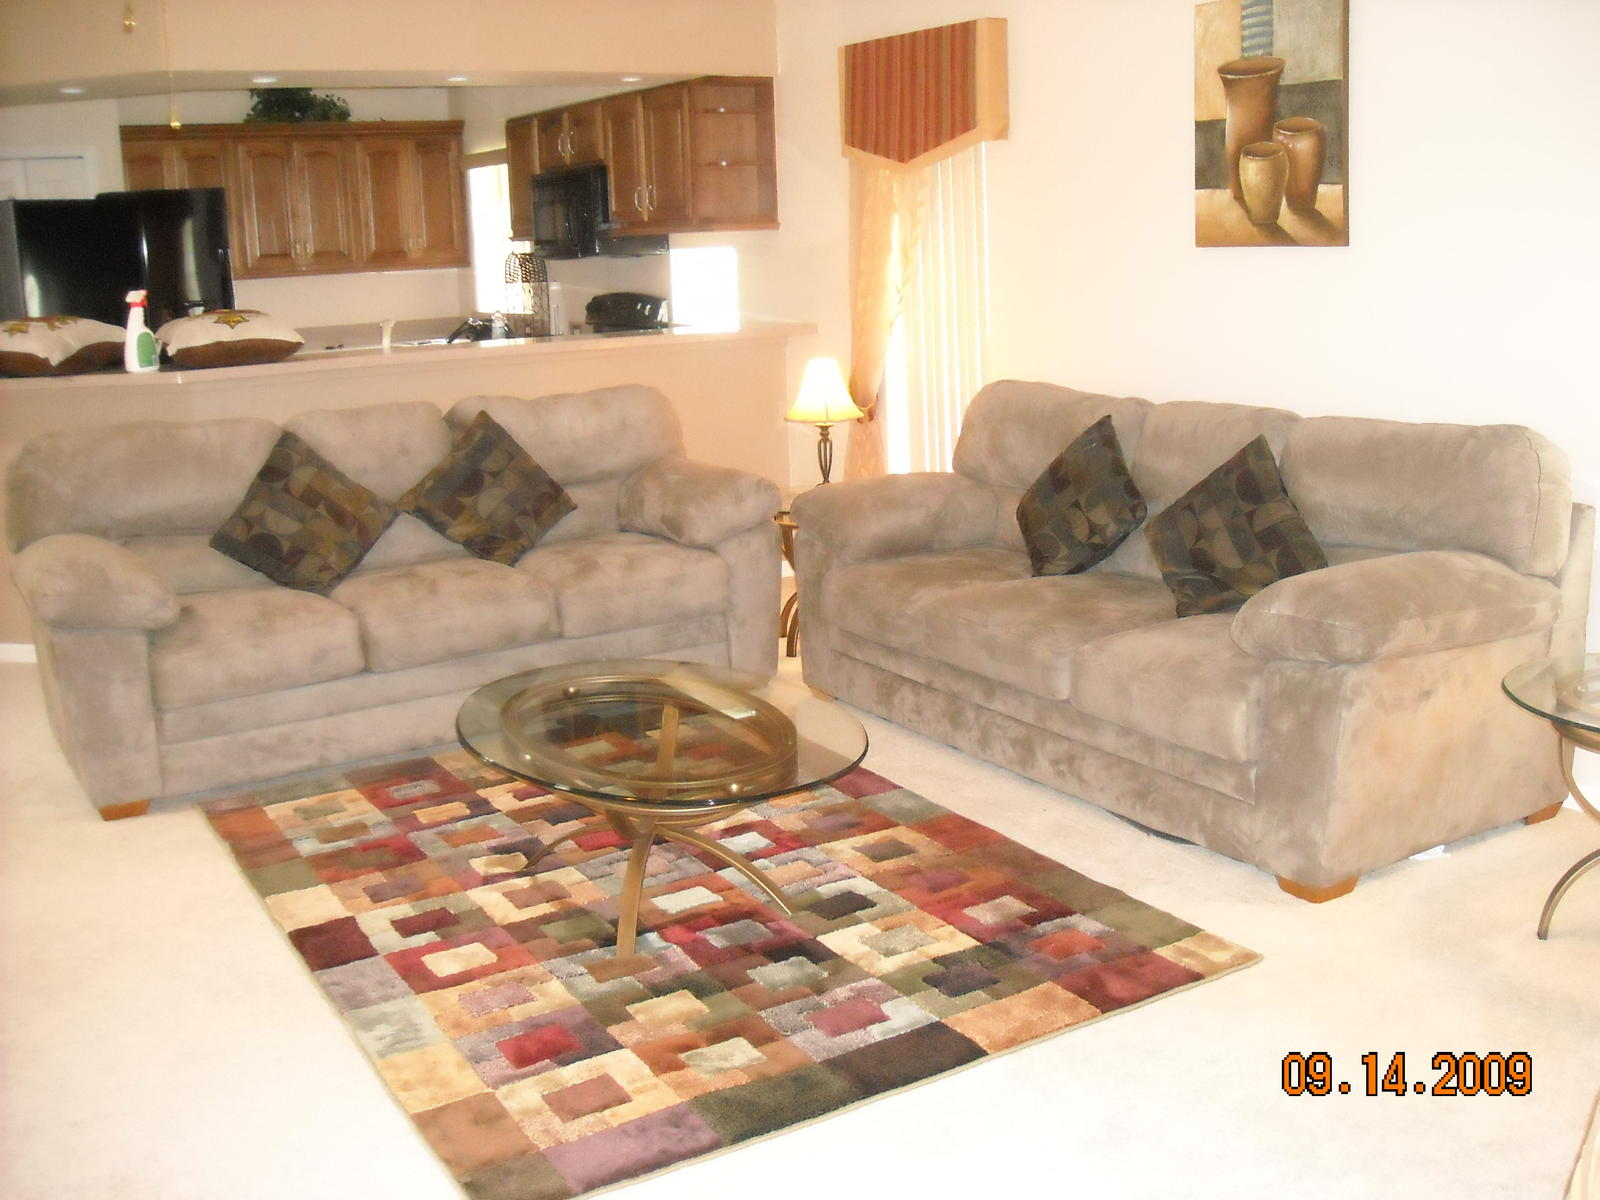 Furniture for sale Classified Ads Buy and sell listings